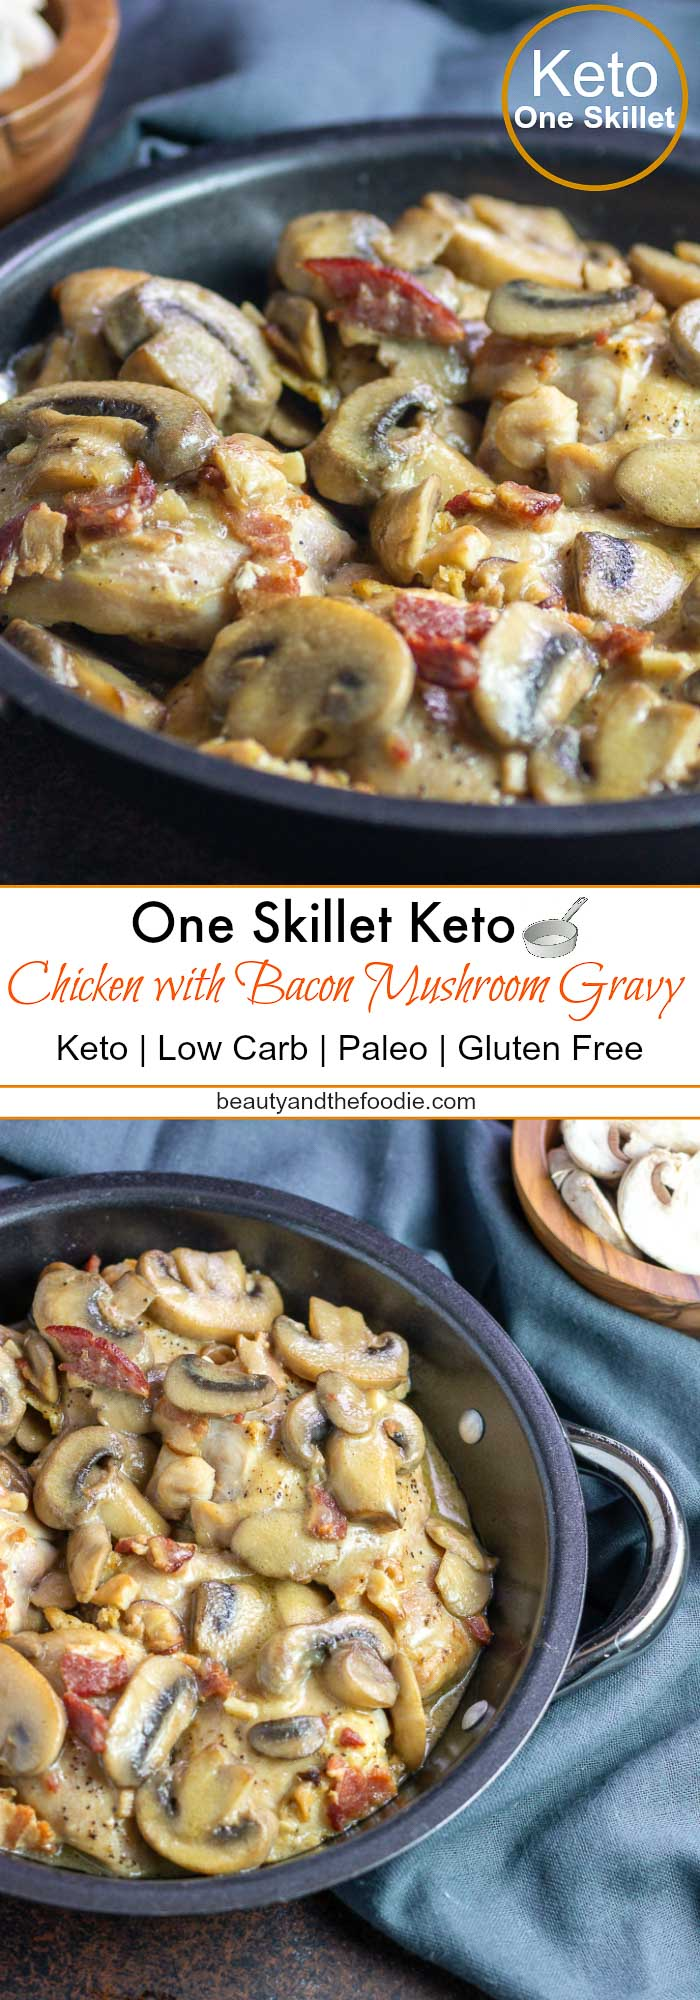 One Skillet Keto Chicken with bacon Mushroom Gravy- Low Carb & Paleo